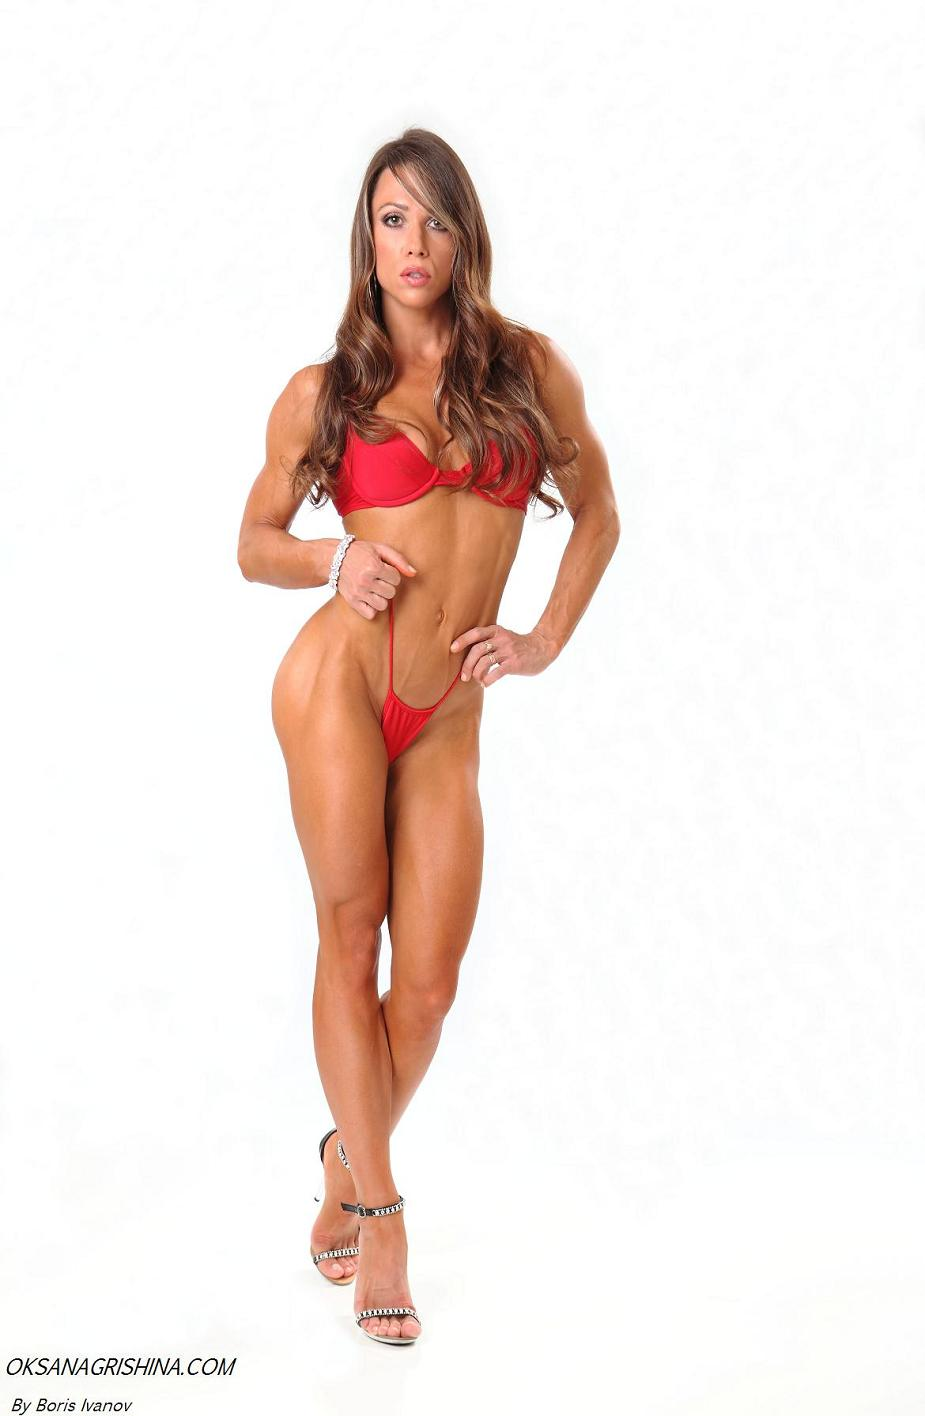 IFBB Fitness Pro Oksana Grishina's update video: http://www.getbig.com/boards/index.php?topic=477362.25